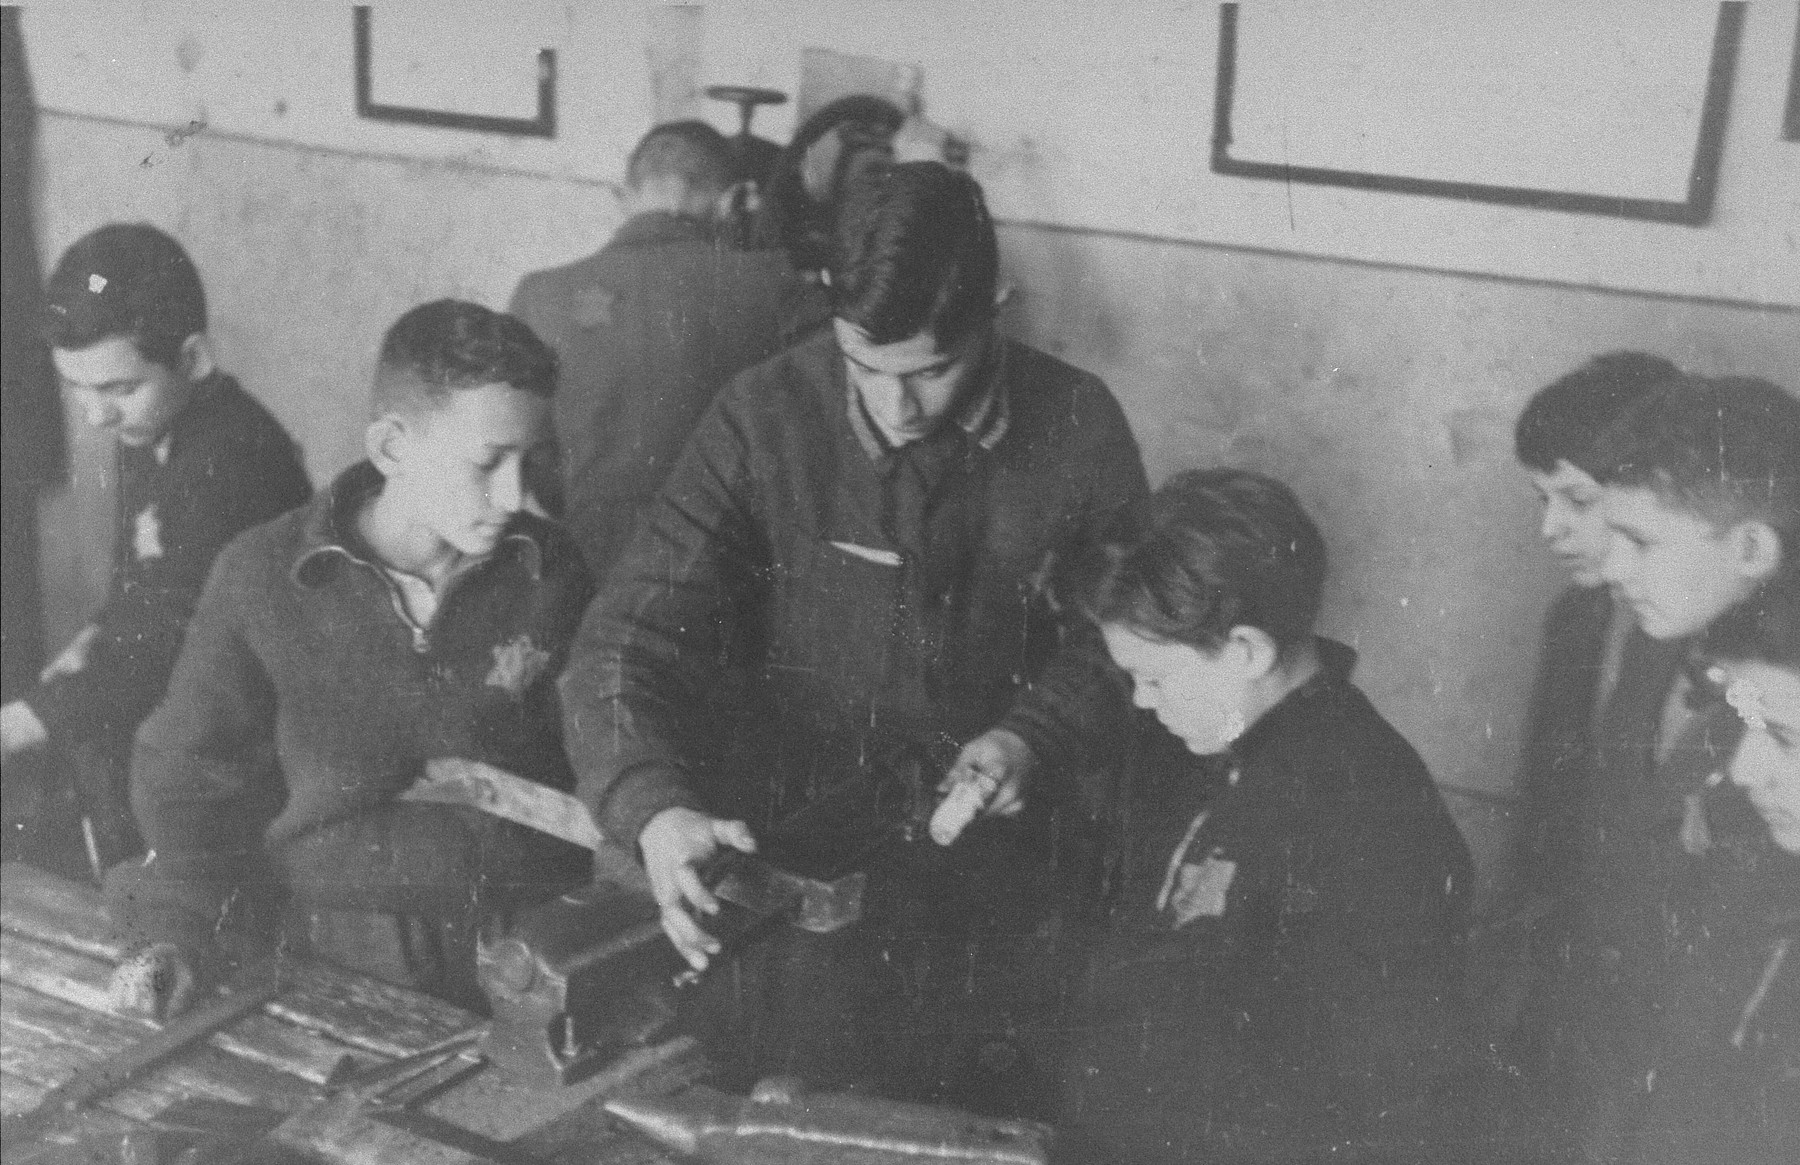 Children working in an ORT carpentry workshop in the Kovno ghetto.    Among those pictured are Eli Gotz (the older youth in the center) and Yizhak Koplowicz (the younger child next to him at the right).